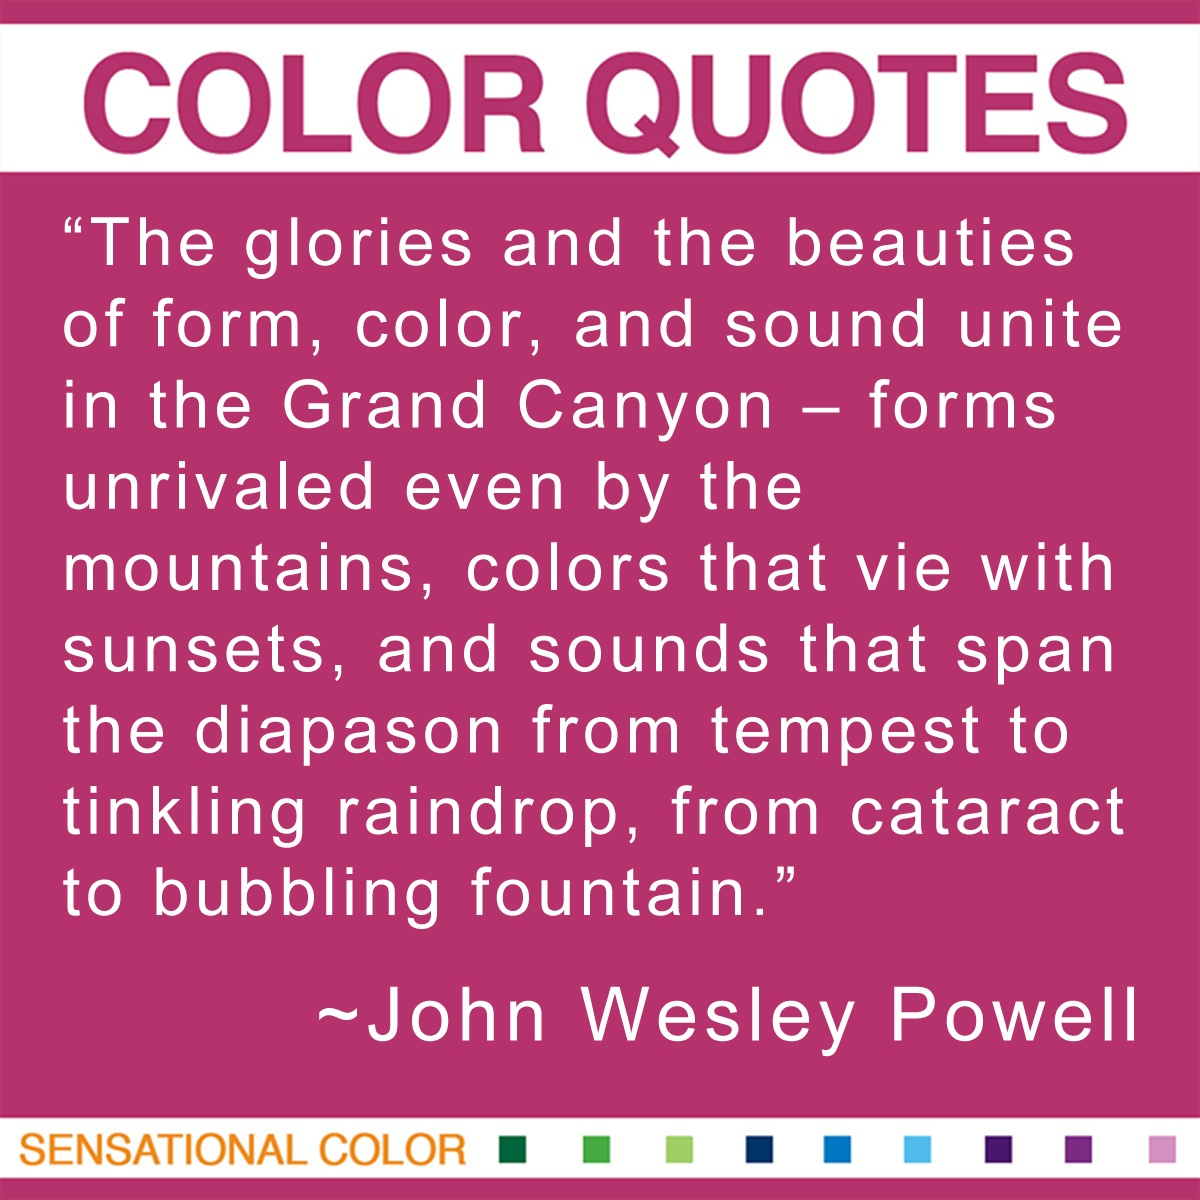 """The glories and the beauties of form, color, and sound unite in the Grand Canyon – forms unrivaled even by the mountains, colors that vie with sunsets, and sounds that span the diapason from tempest to tinkling raindrop, from cataract to bubbling fountain."" - John Wesley Powell"